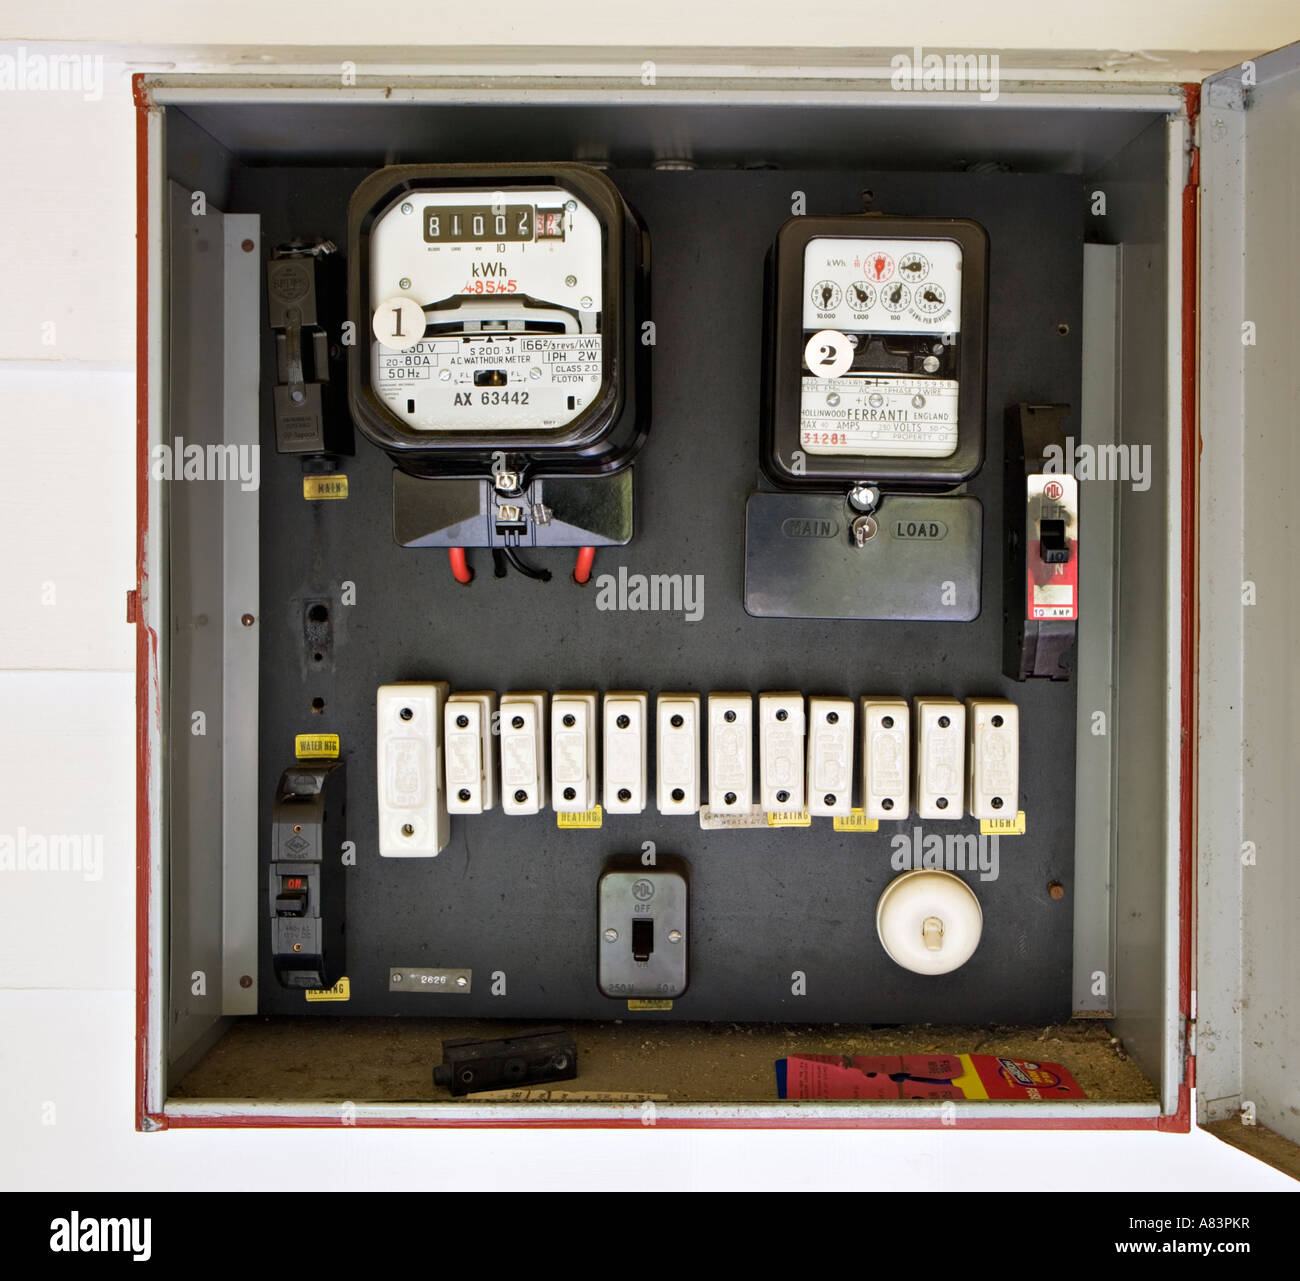 electric meter box stock photos & electric meter box stock images electric meter box plug electricity meter in box with old style fuses, circa 1962, in new zealand home